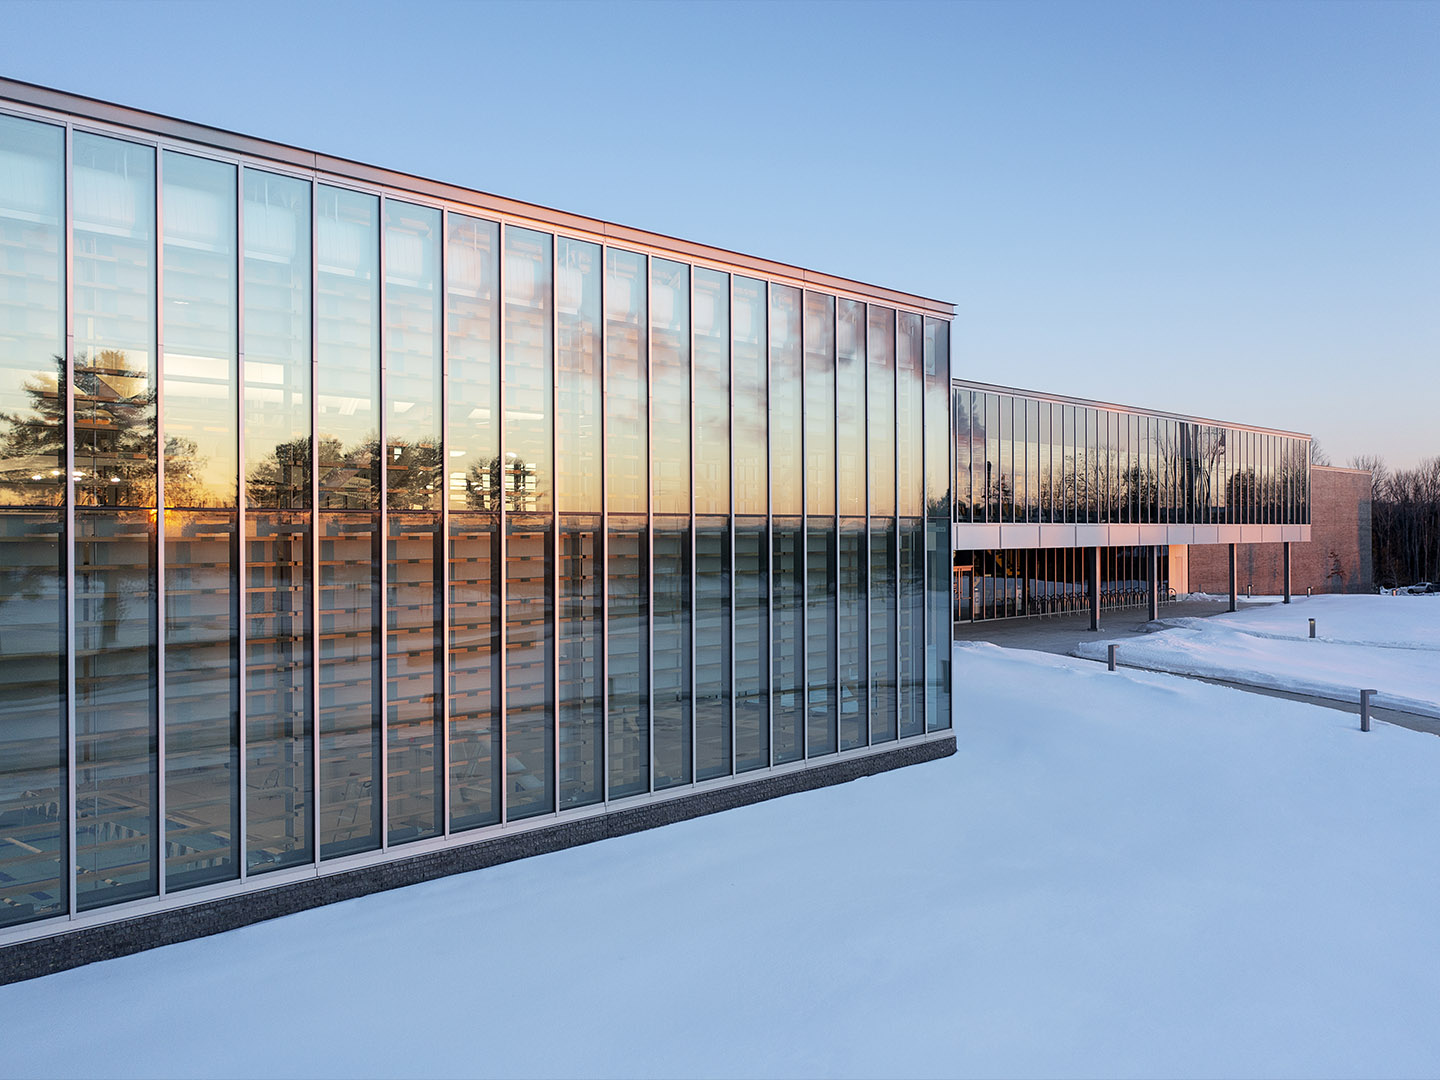 Harold Alfond Athletics & Recreation Center, Colby College